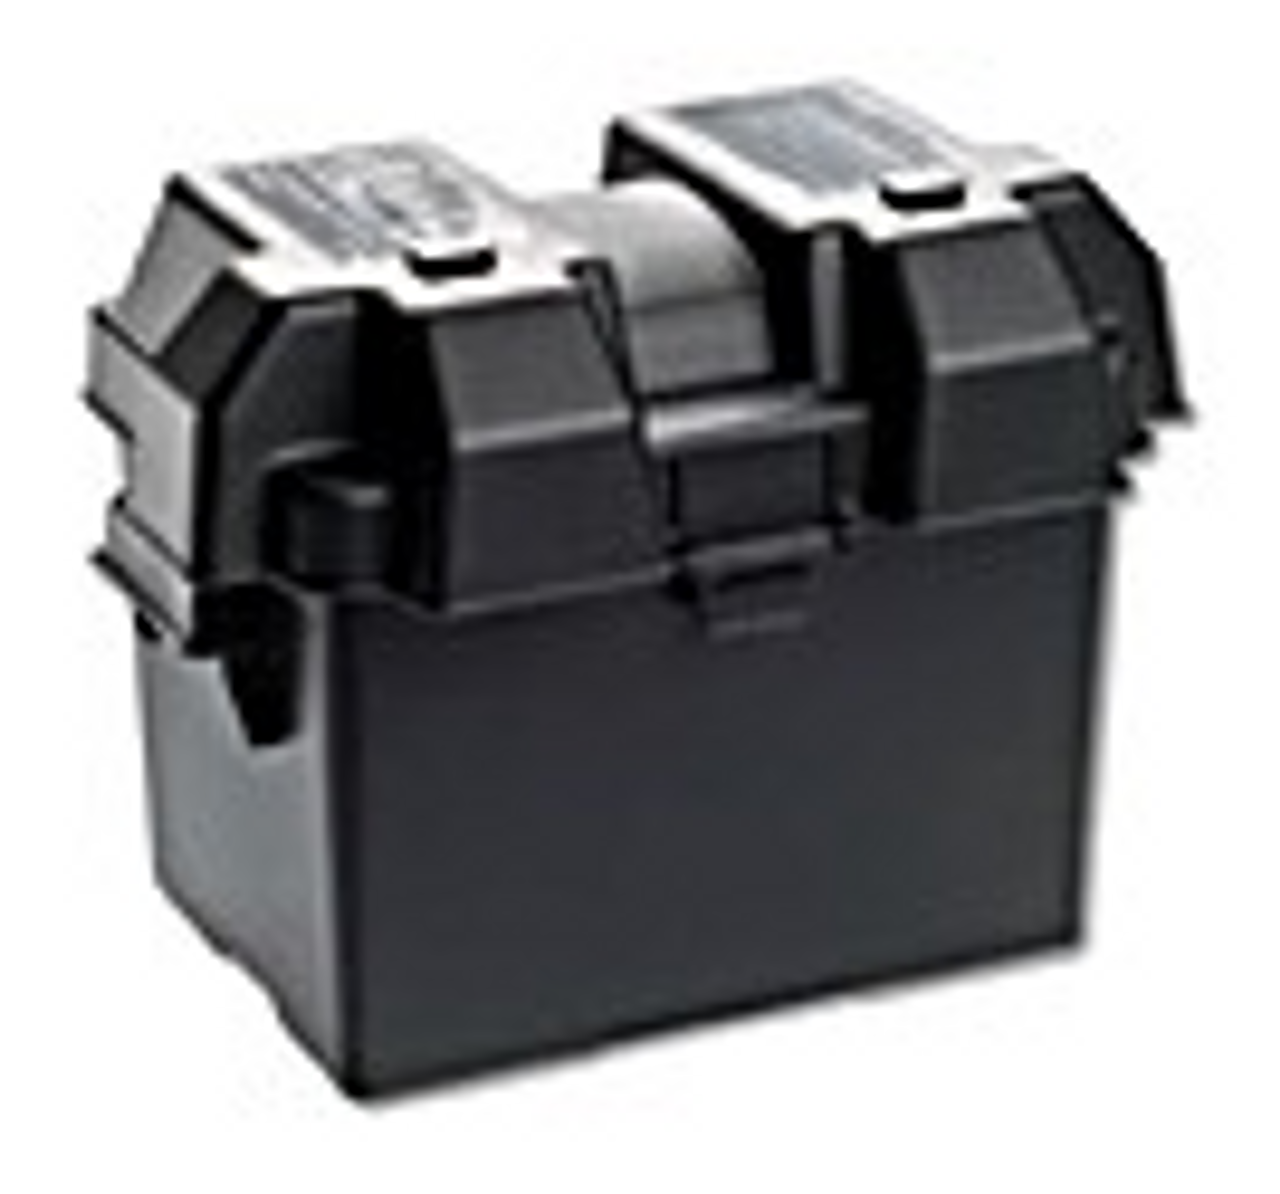 BATTERY BOX - GROUP 24 - BLACK (19-1025)